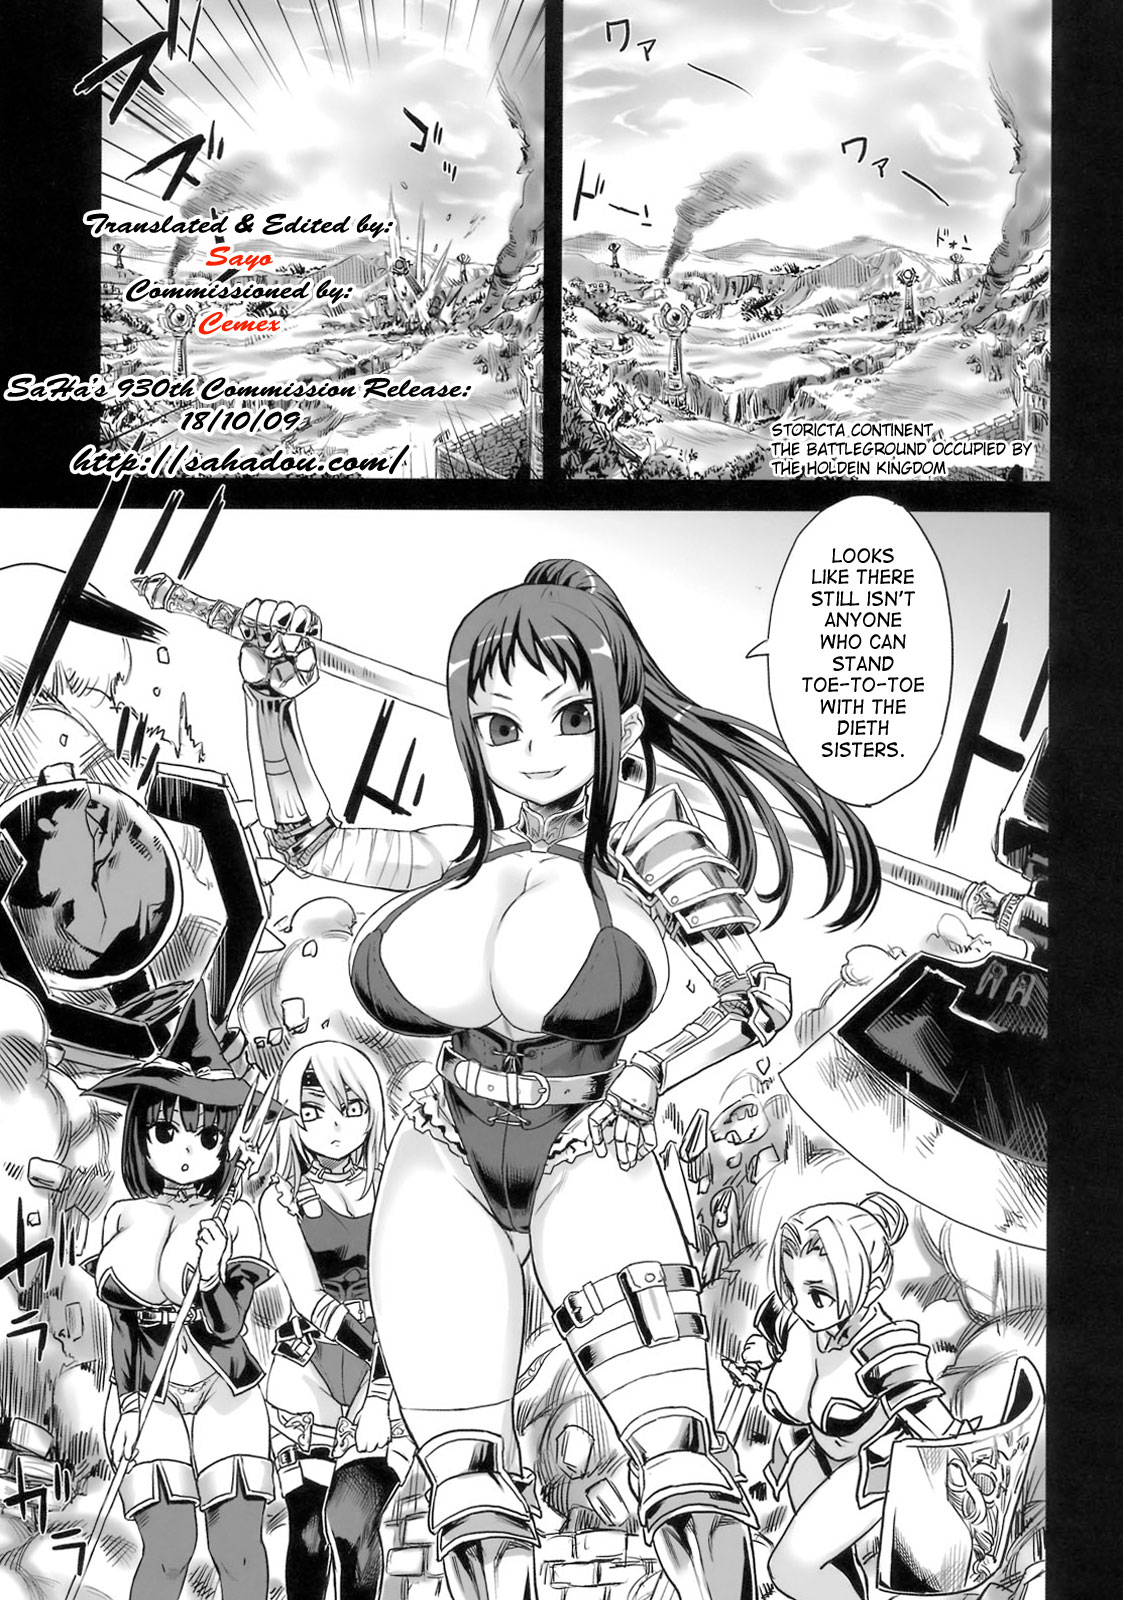 DoujinReader.com [SaHa] Victim Girls 7 - 02